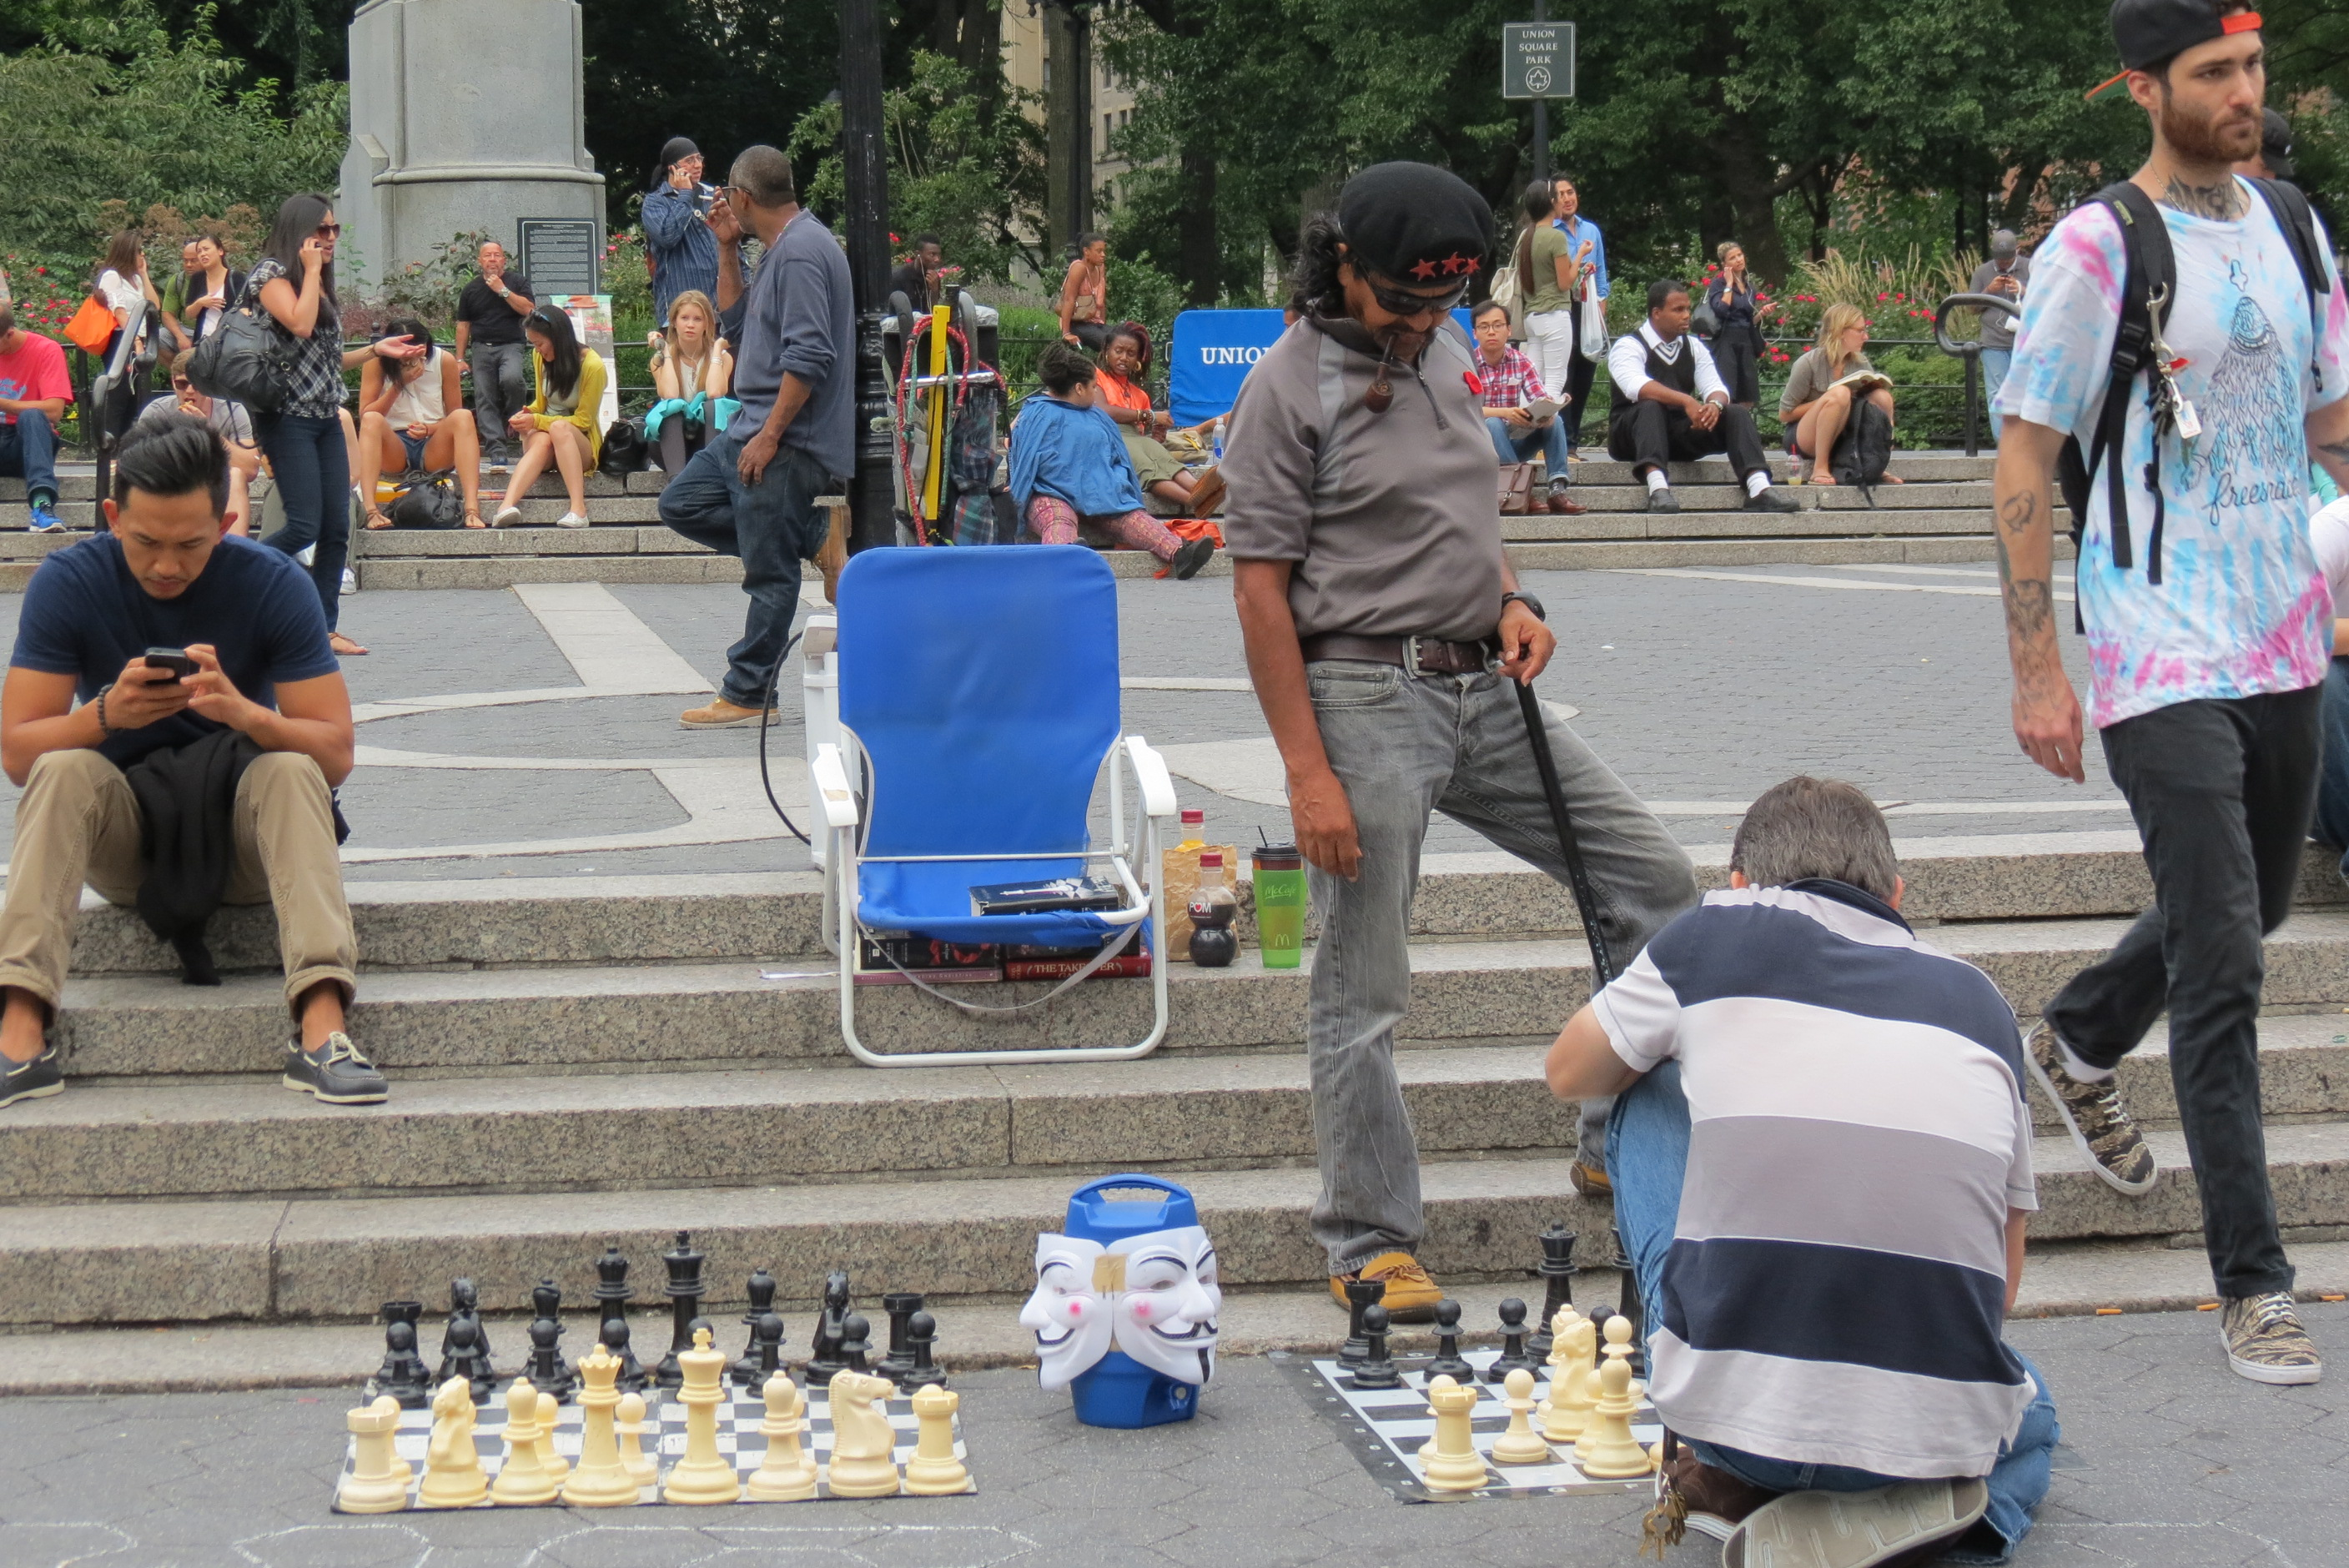 Occupy playing chess